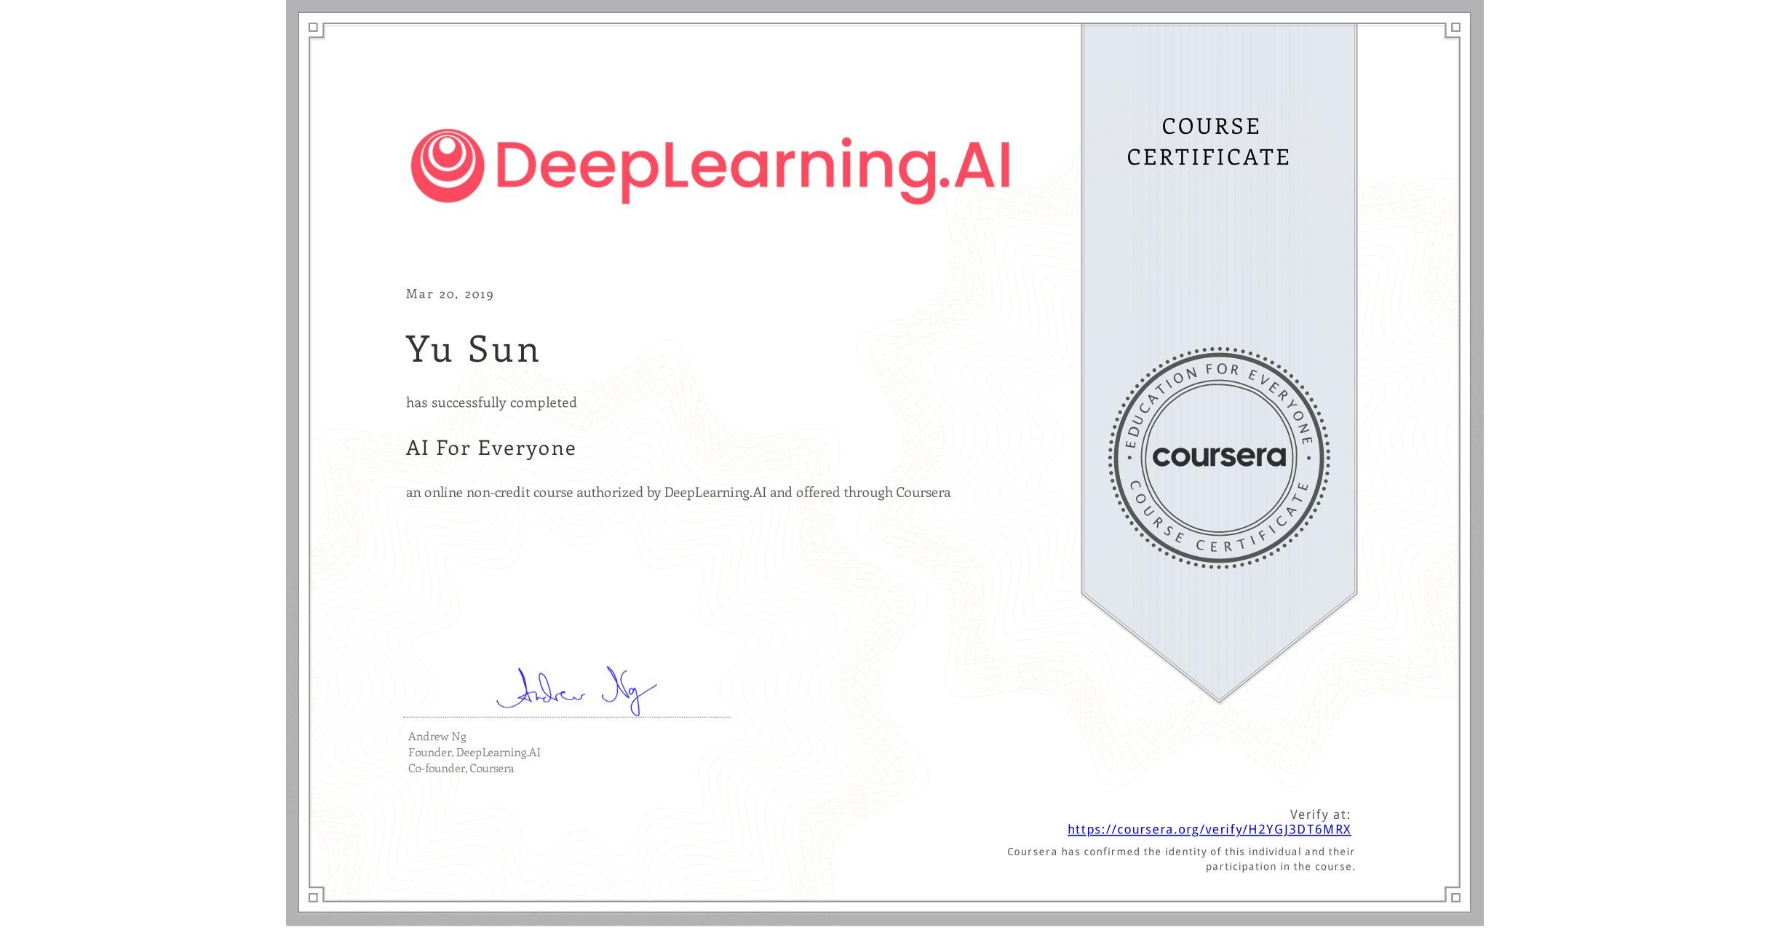 View certificate for Yu Sun, AI For Everyone, an online non-credit course authorized by DeepLearning.AI and offered through Coursera